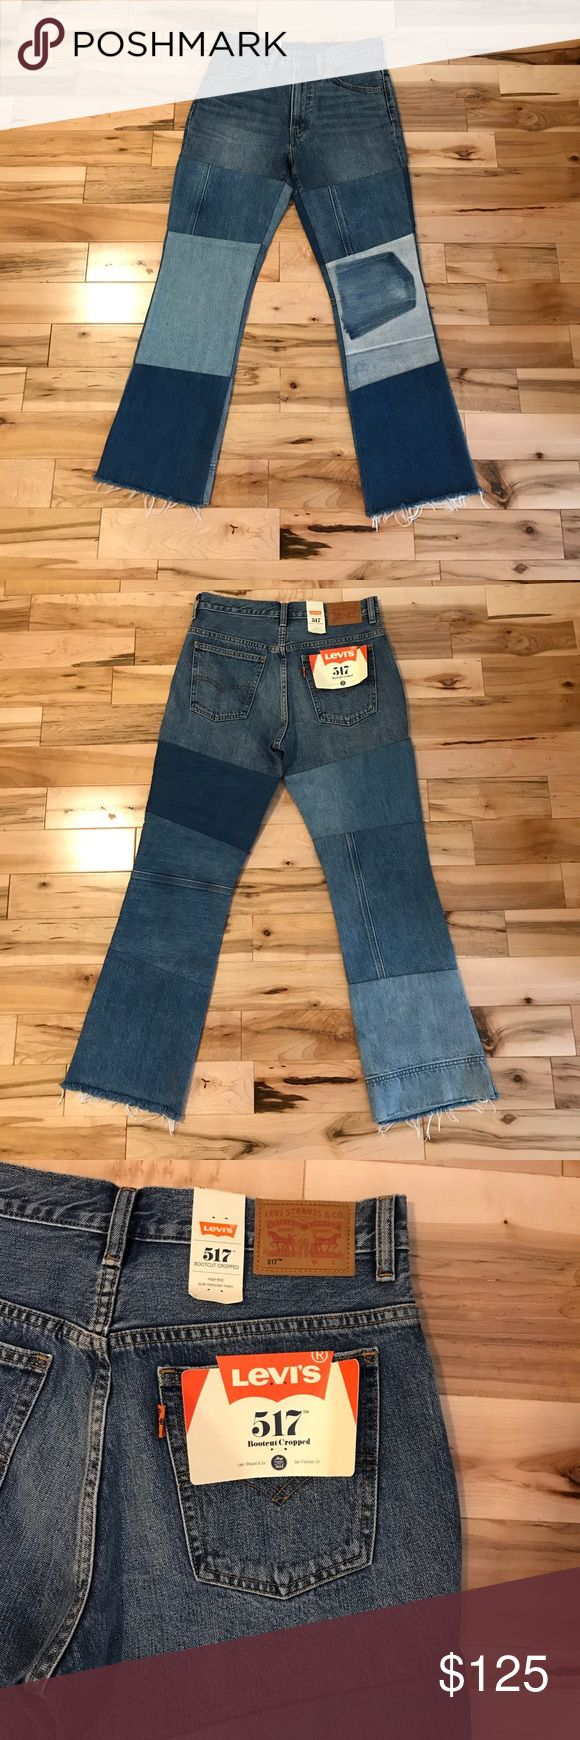 "Levi's 517 patched boot cut cropped jean High rise, rise = 10.75'' ✨ 28"" inseam✨ runs a bit small. I'm typically a 27 but these are a 28 and snug. I can tell they will stretch out though ✨ still full price on free people website!! Levi's Jeans Ankle & Cropped"